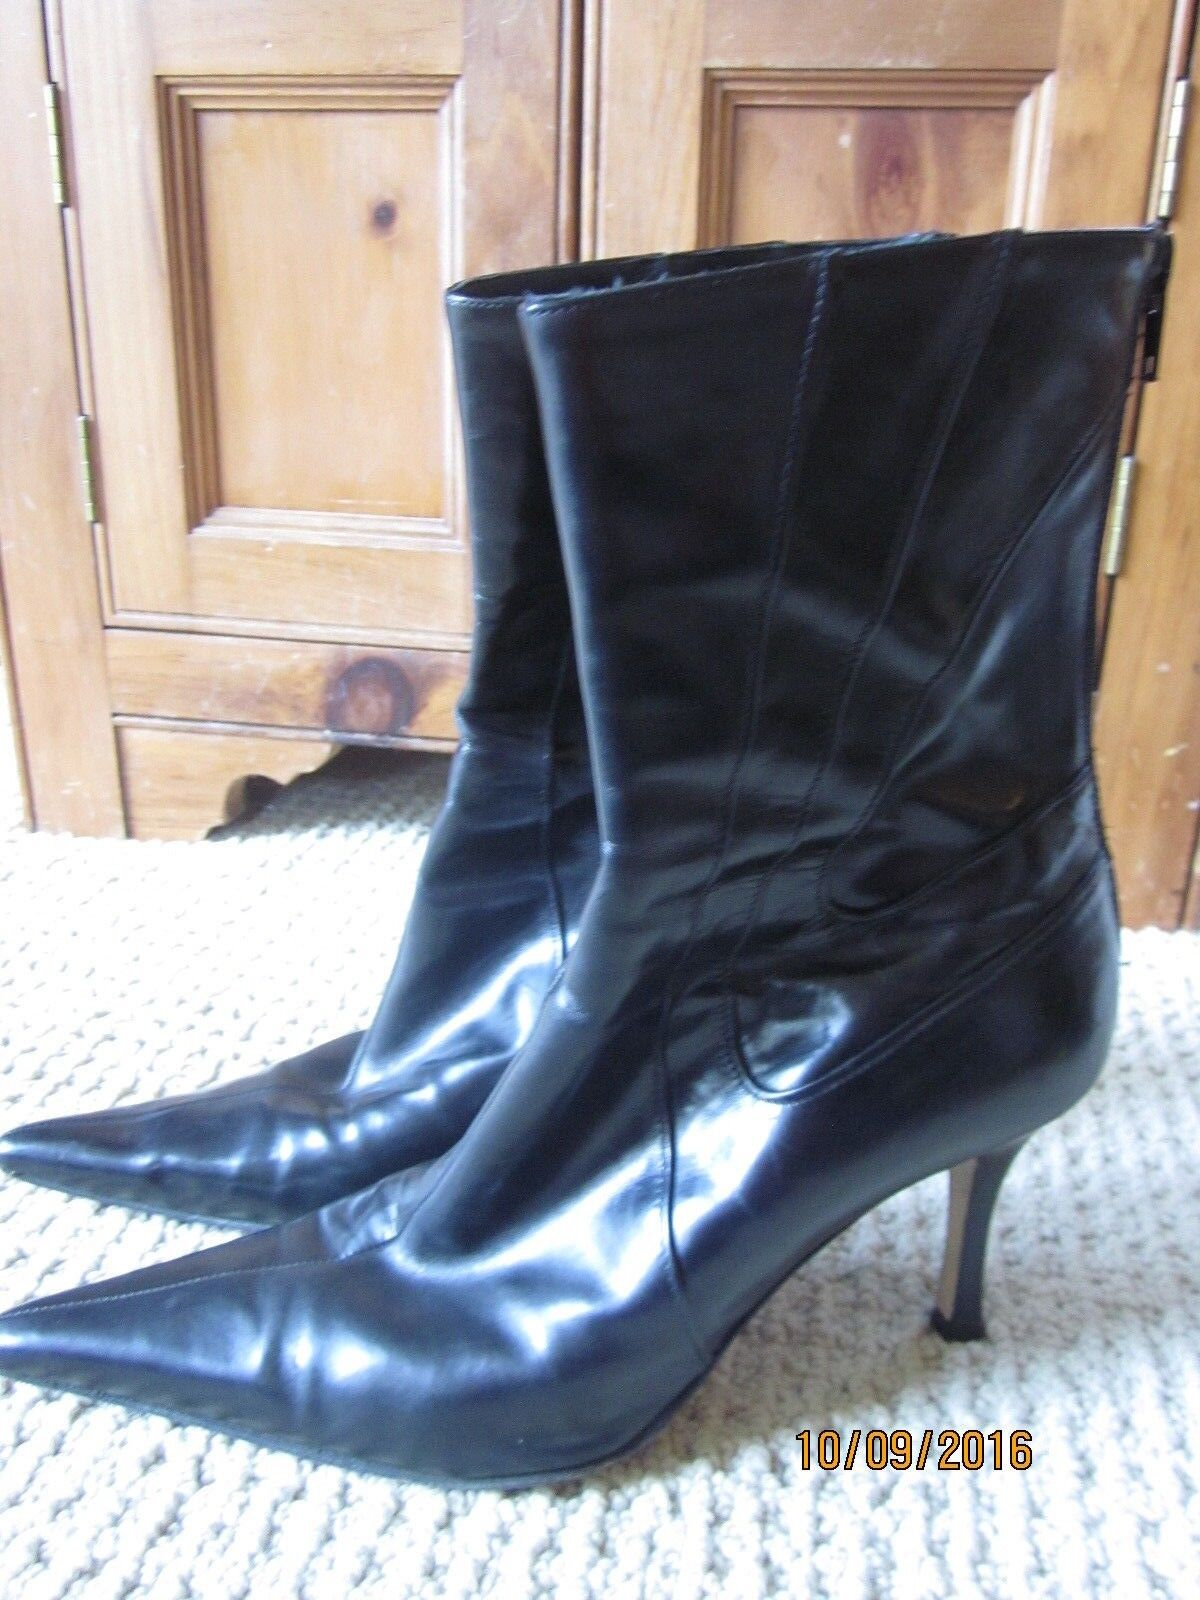 Vero Cuoio  Black pointy toe Leather Women Boots size 40 European  Made in